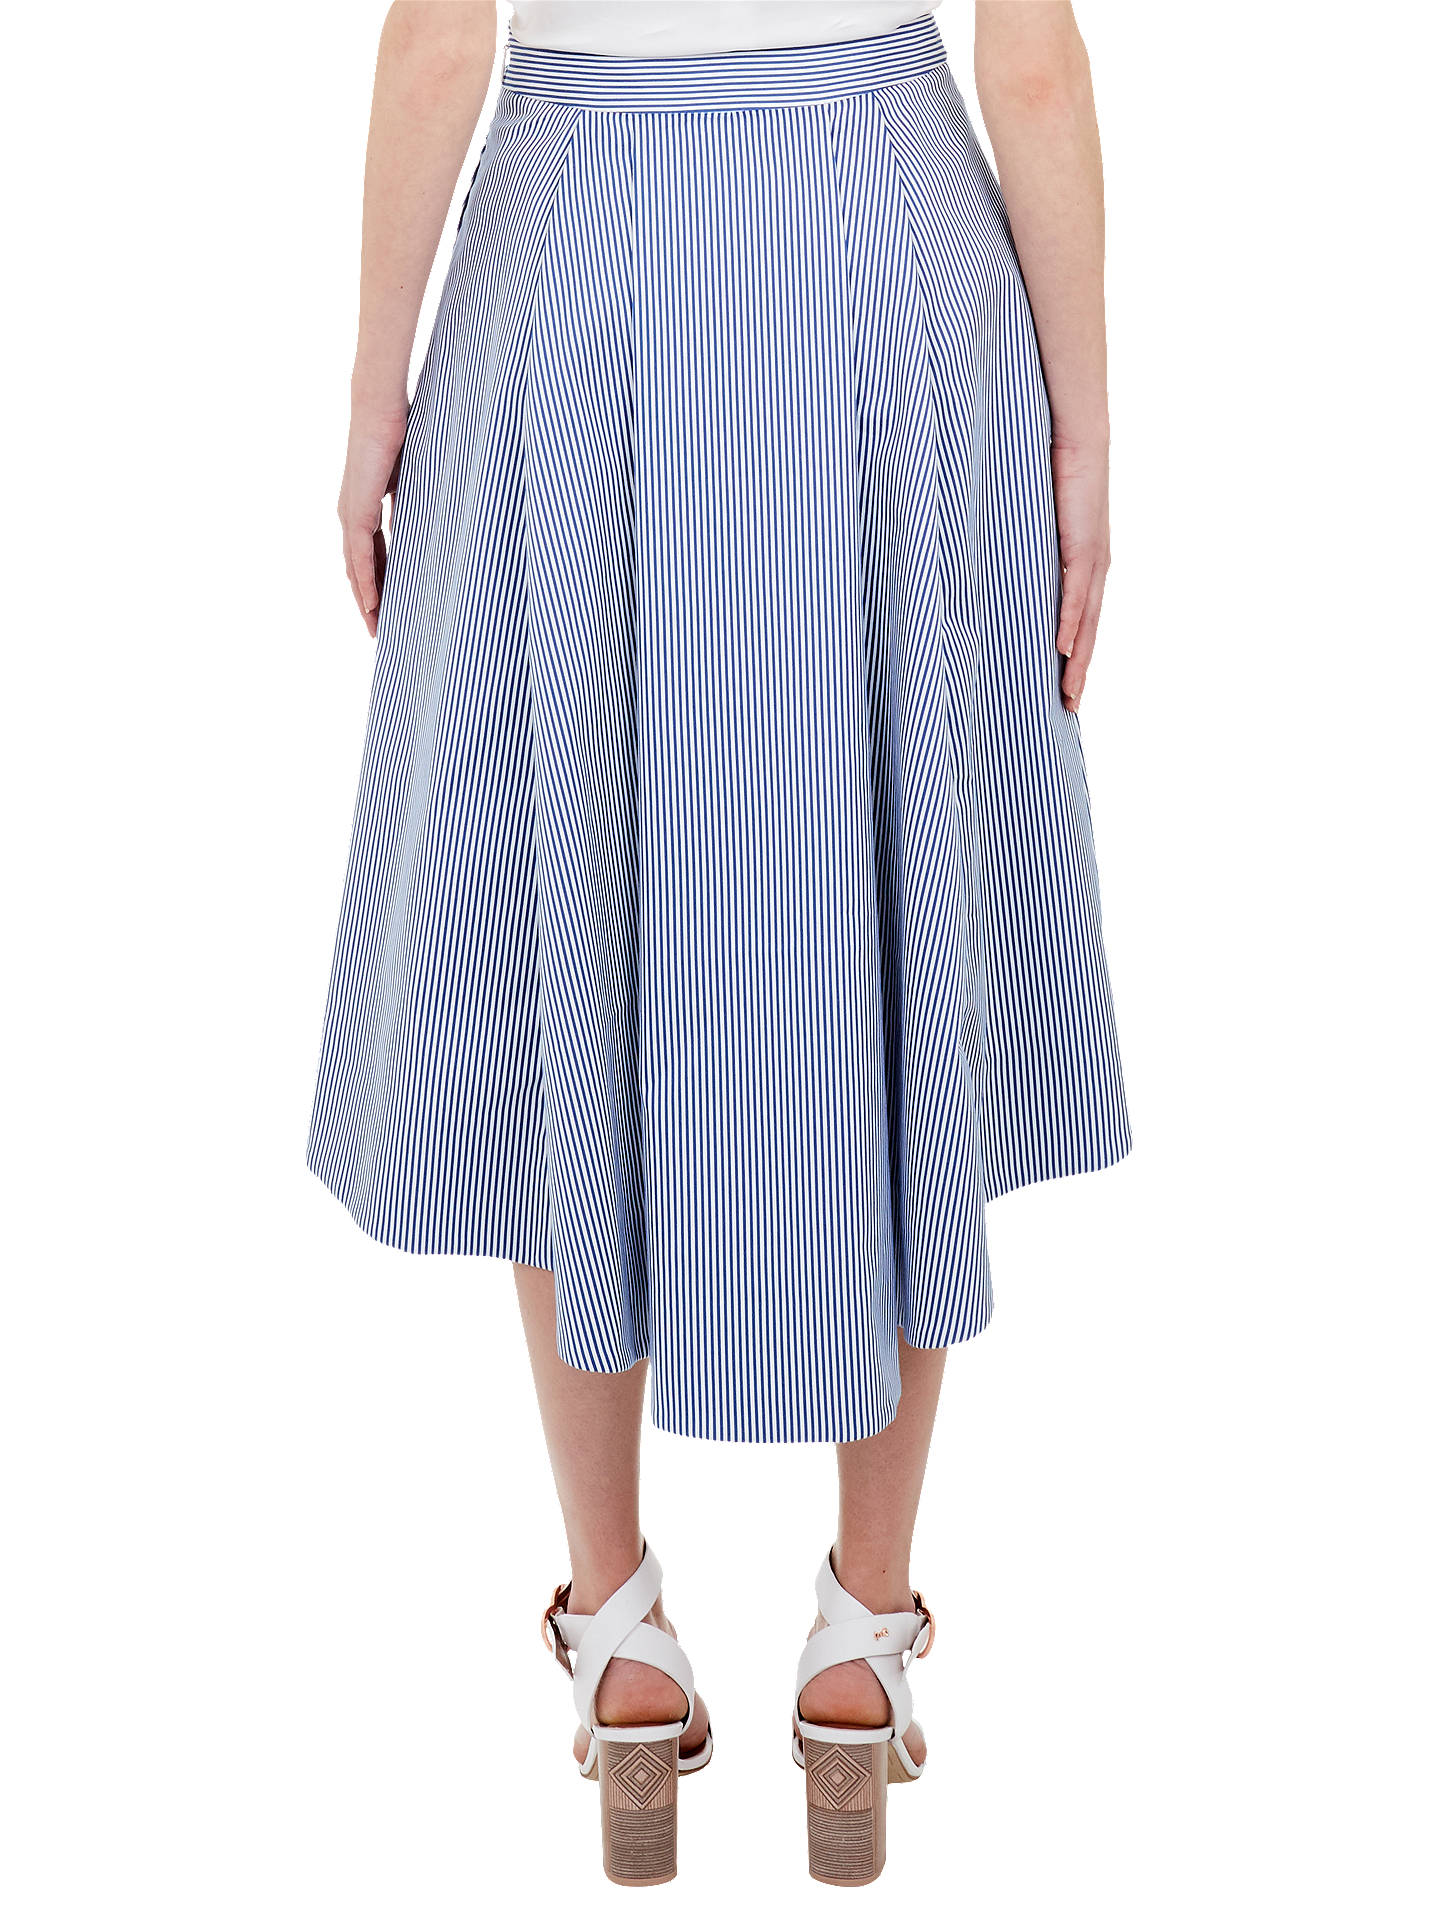 b8f4eb004 ... Buy Ted Baker Stripe Drop Hem Cotton Skirt, White/Blue, 6 Online at ...